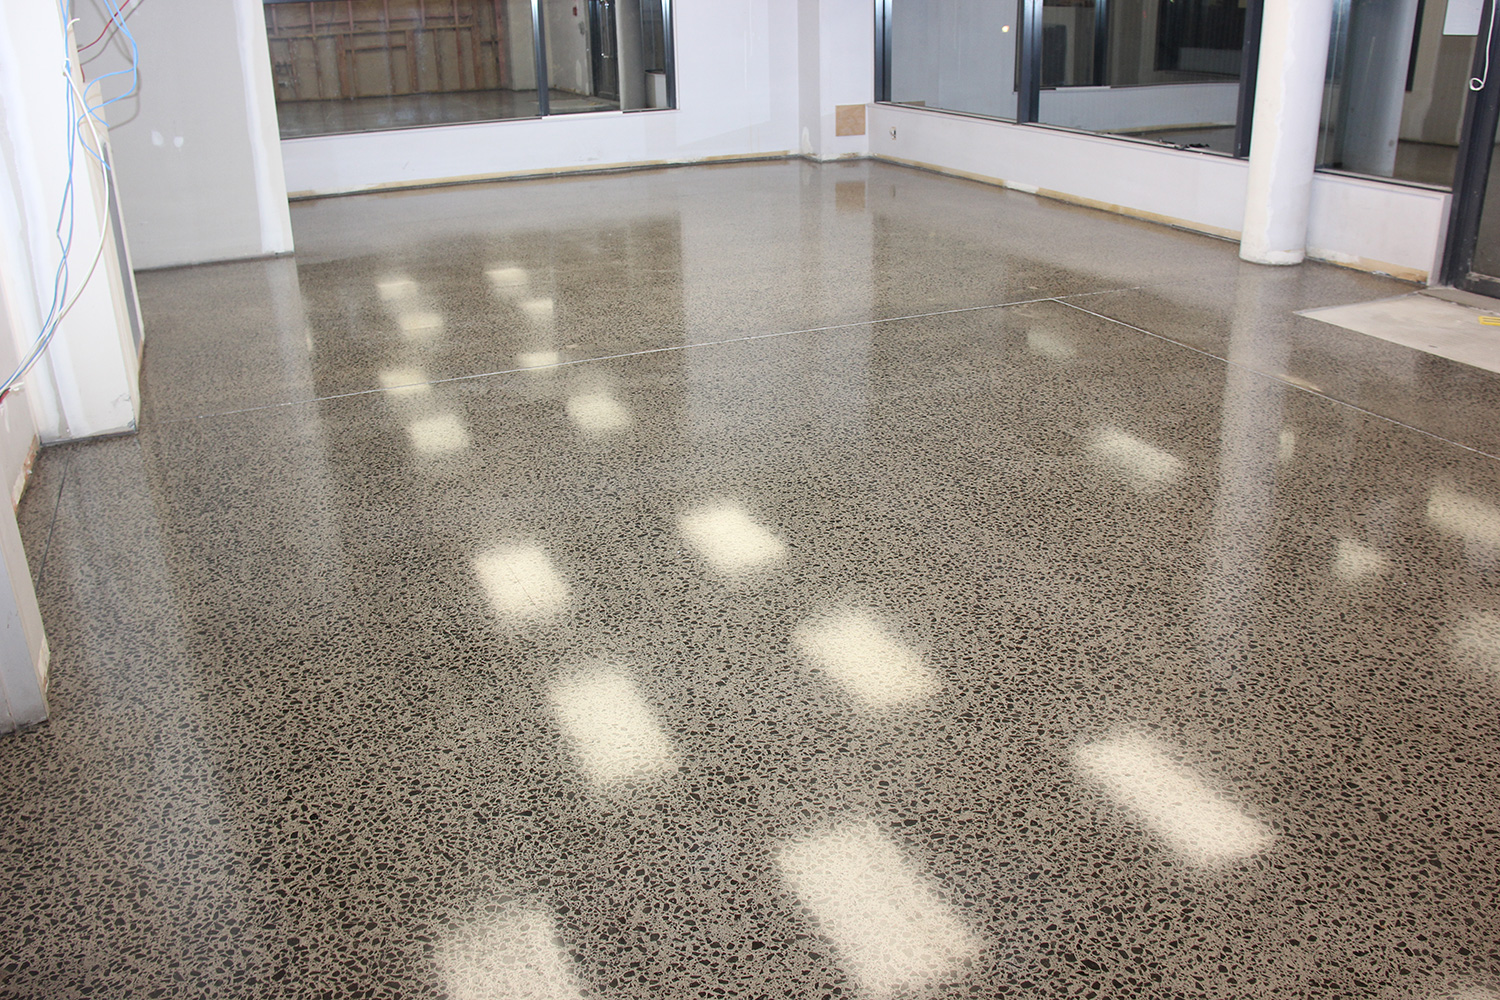 Polishing Concrete Experts and Floor Grinding Auckland